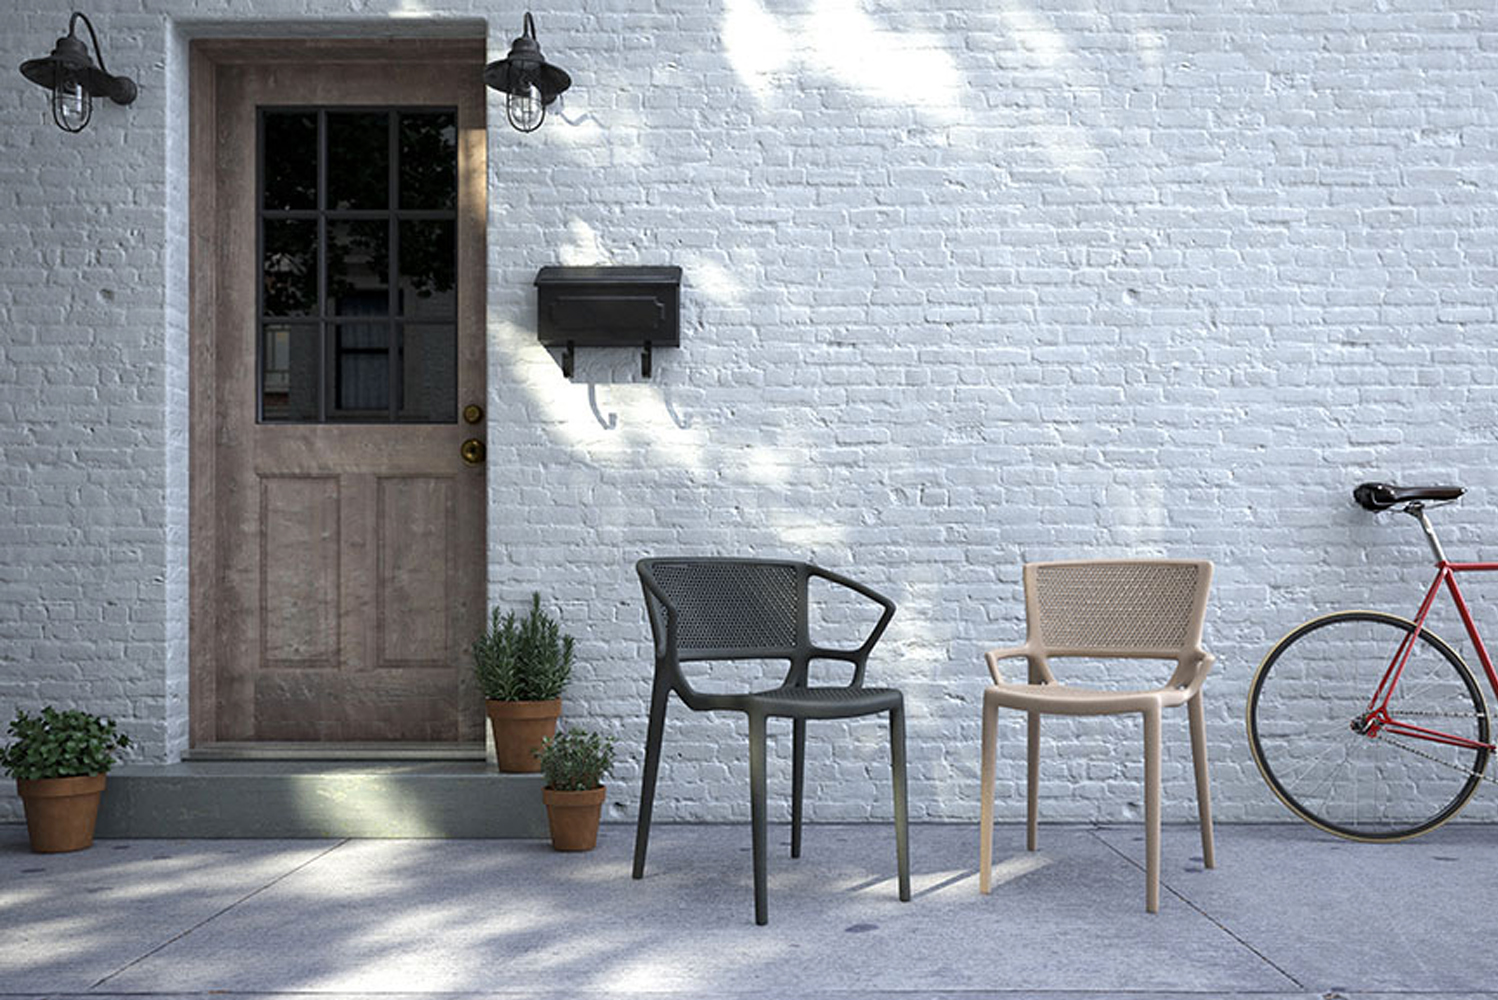 Community Furniture launched Florette, an indoor-outdoor stackable seating ideal for hospitality venues.